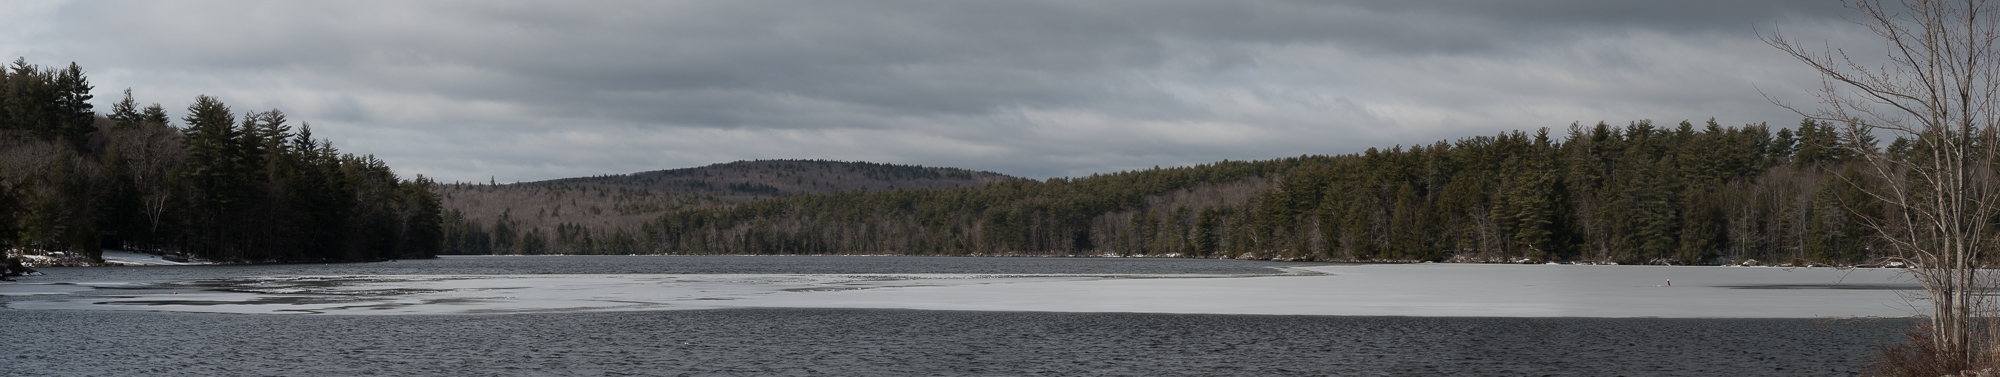 Gregg Lake Panorama(18 April 2018, 5 frames))